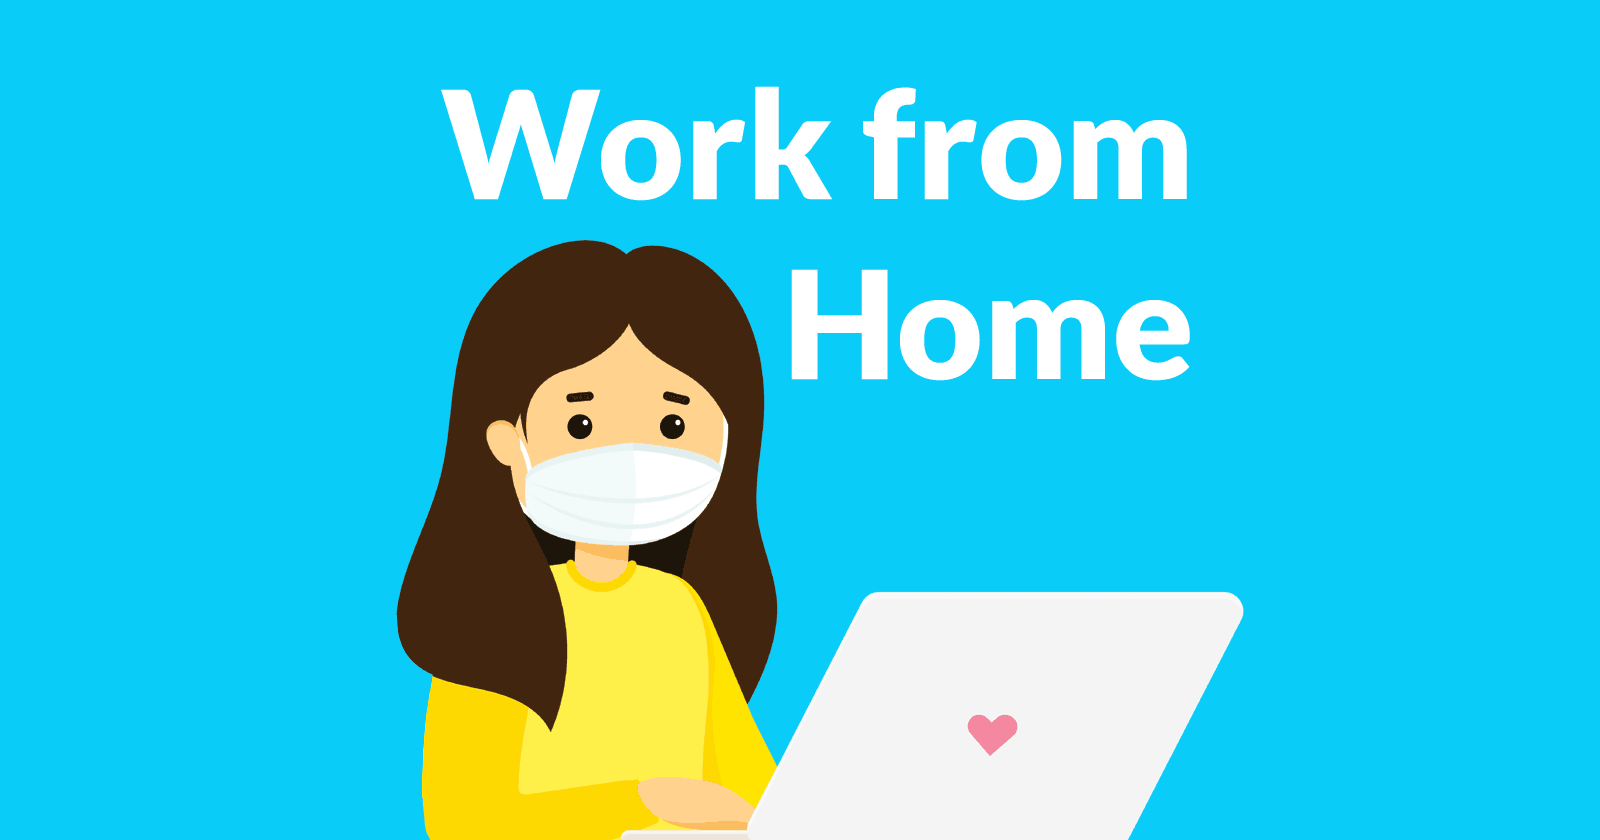 10 Important Tips For Maintaining a Good Health While Working From Home